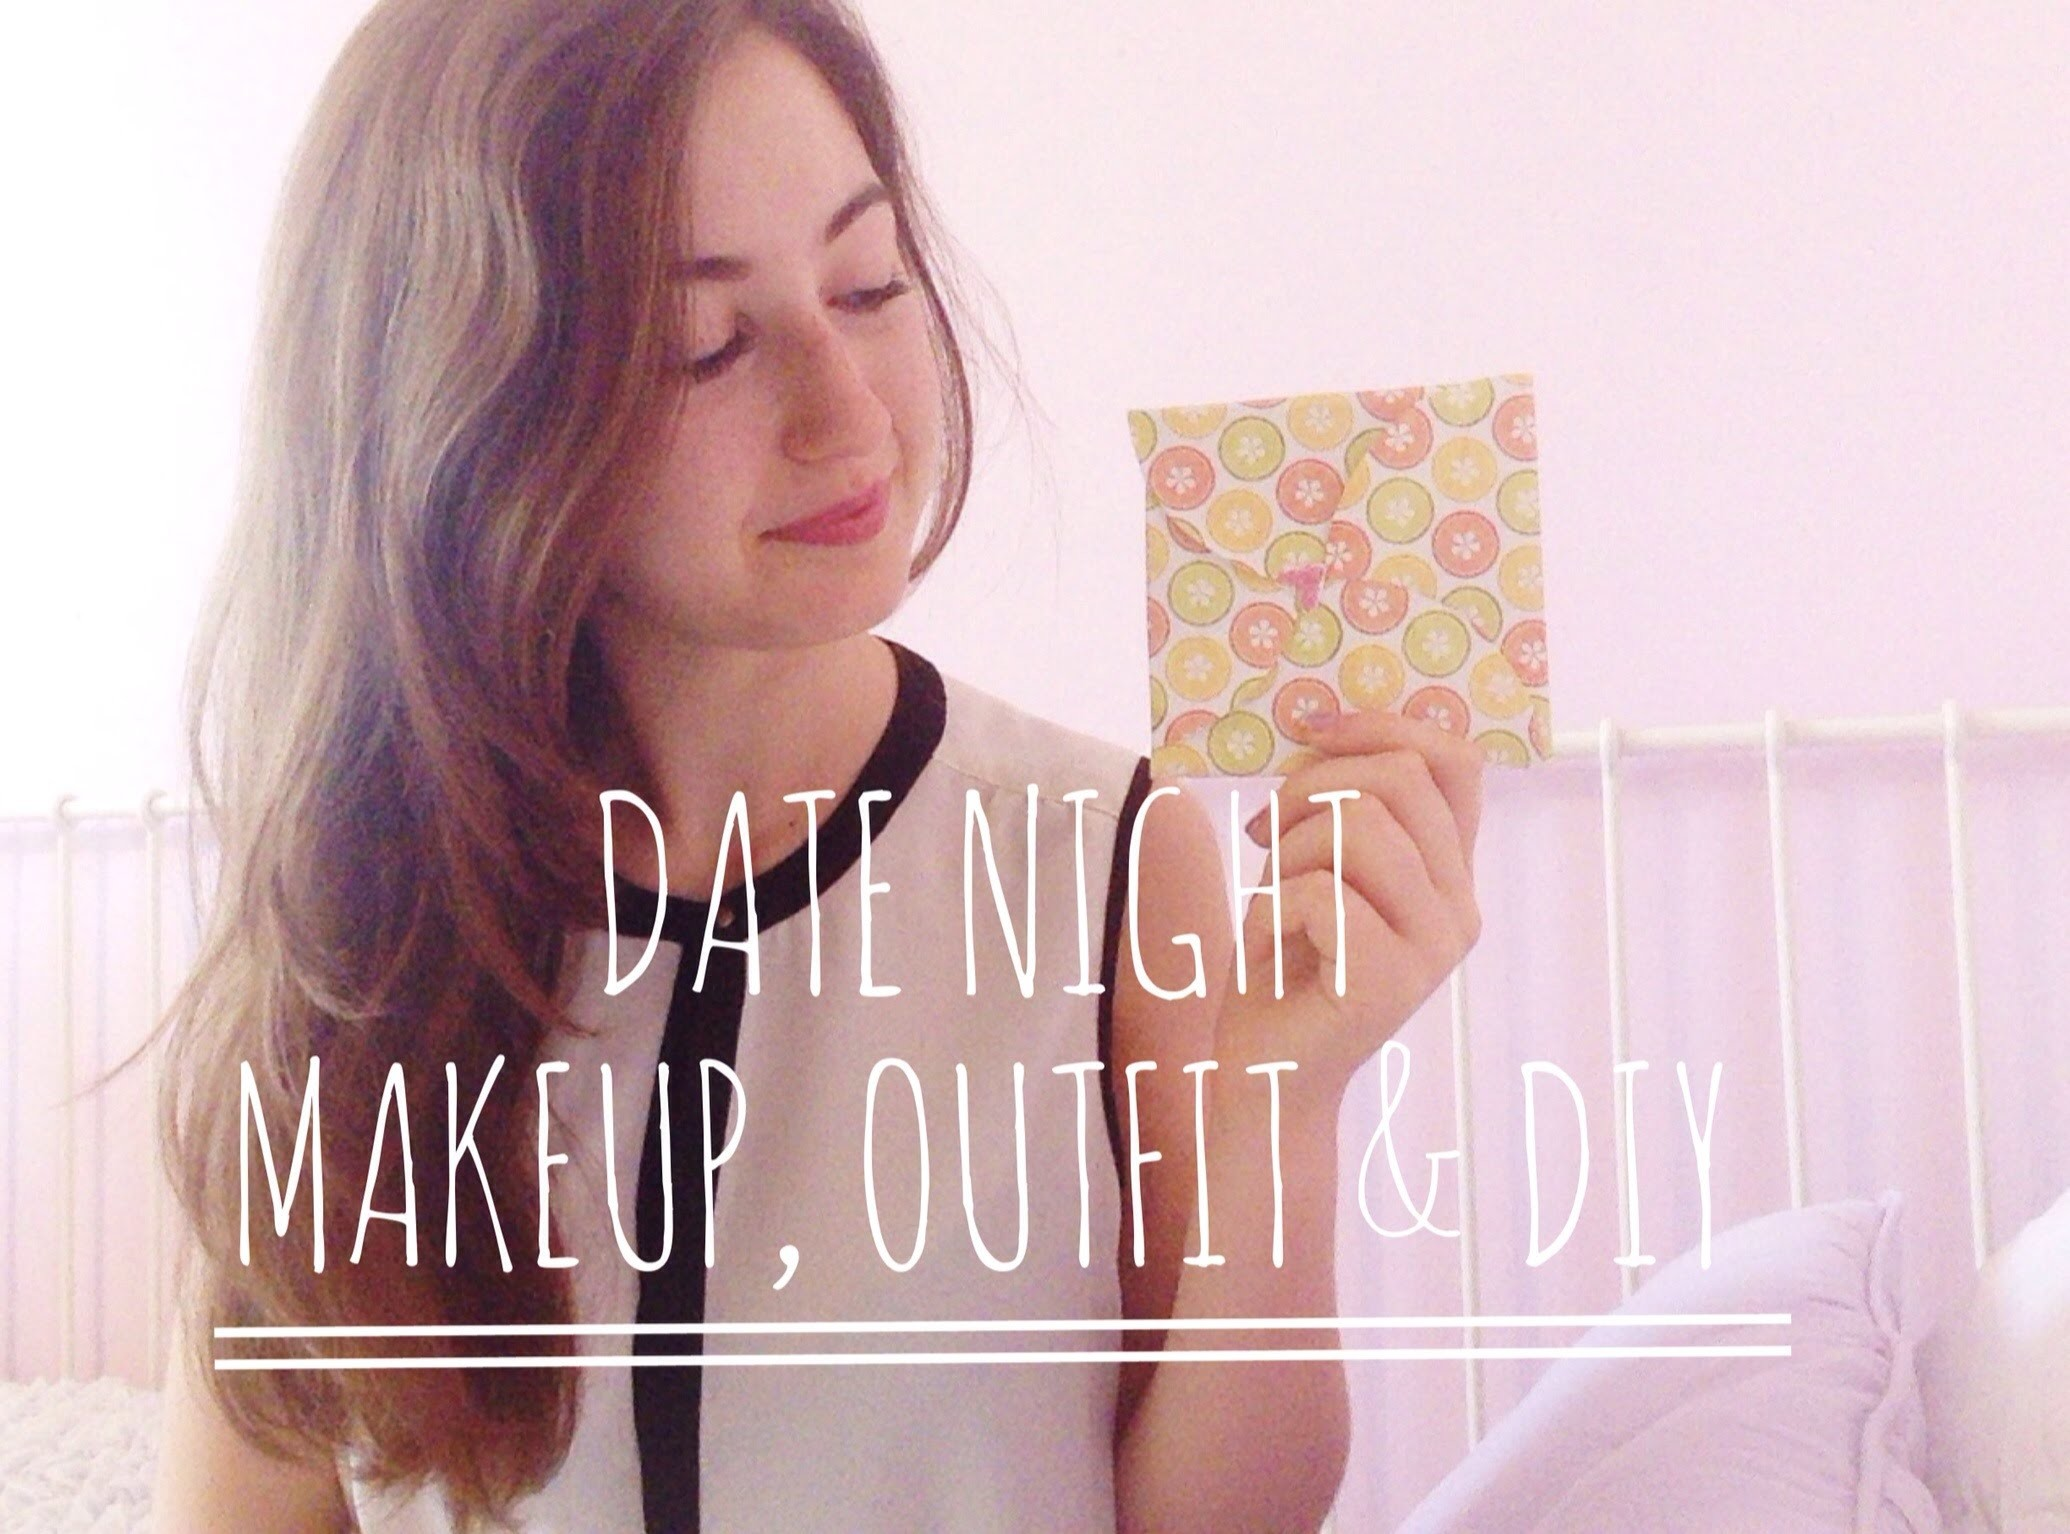 Romantic Date Night Makeup, Outfit & DIY♡ | itsLucretia